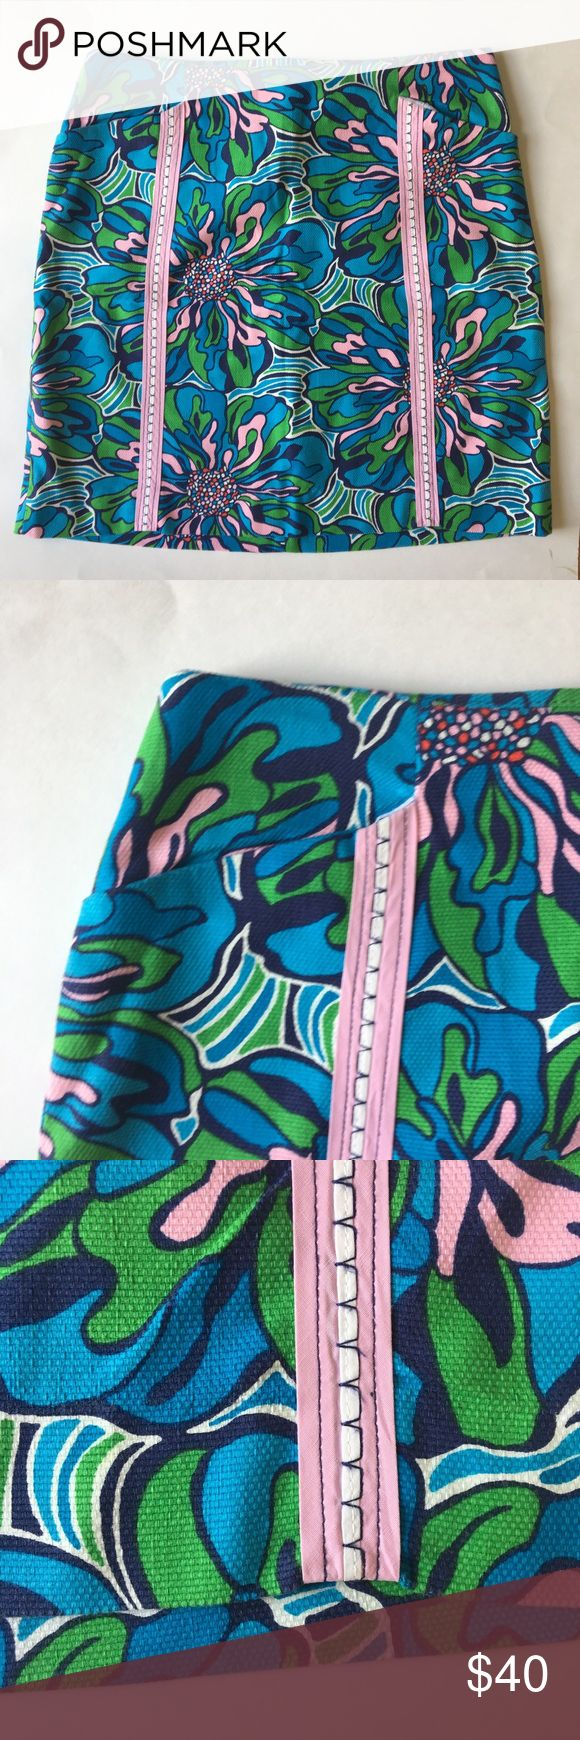 🌸 Lilly Pulitzer Printed Mini 🌸 Adorable skirt by Lilly Pulitzer Lilly Pulitzer Skirts Mini